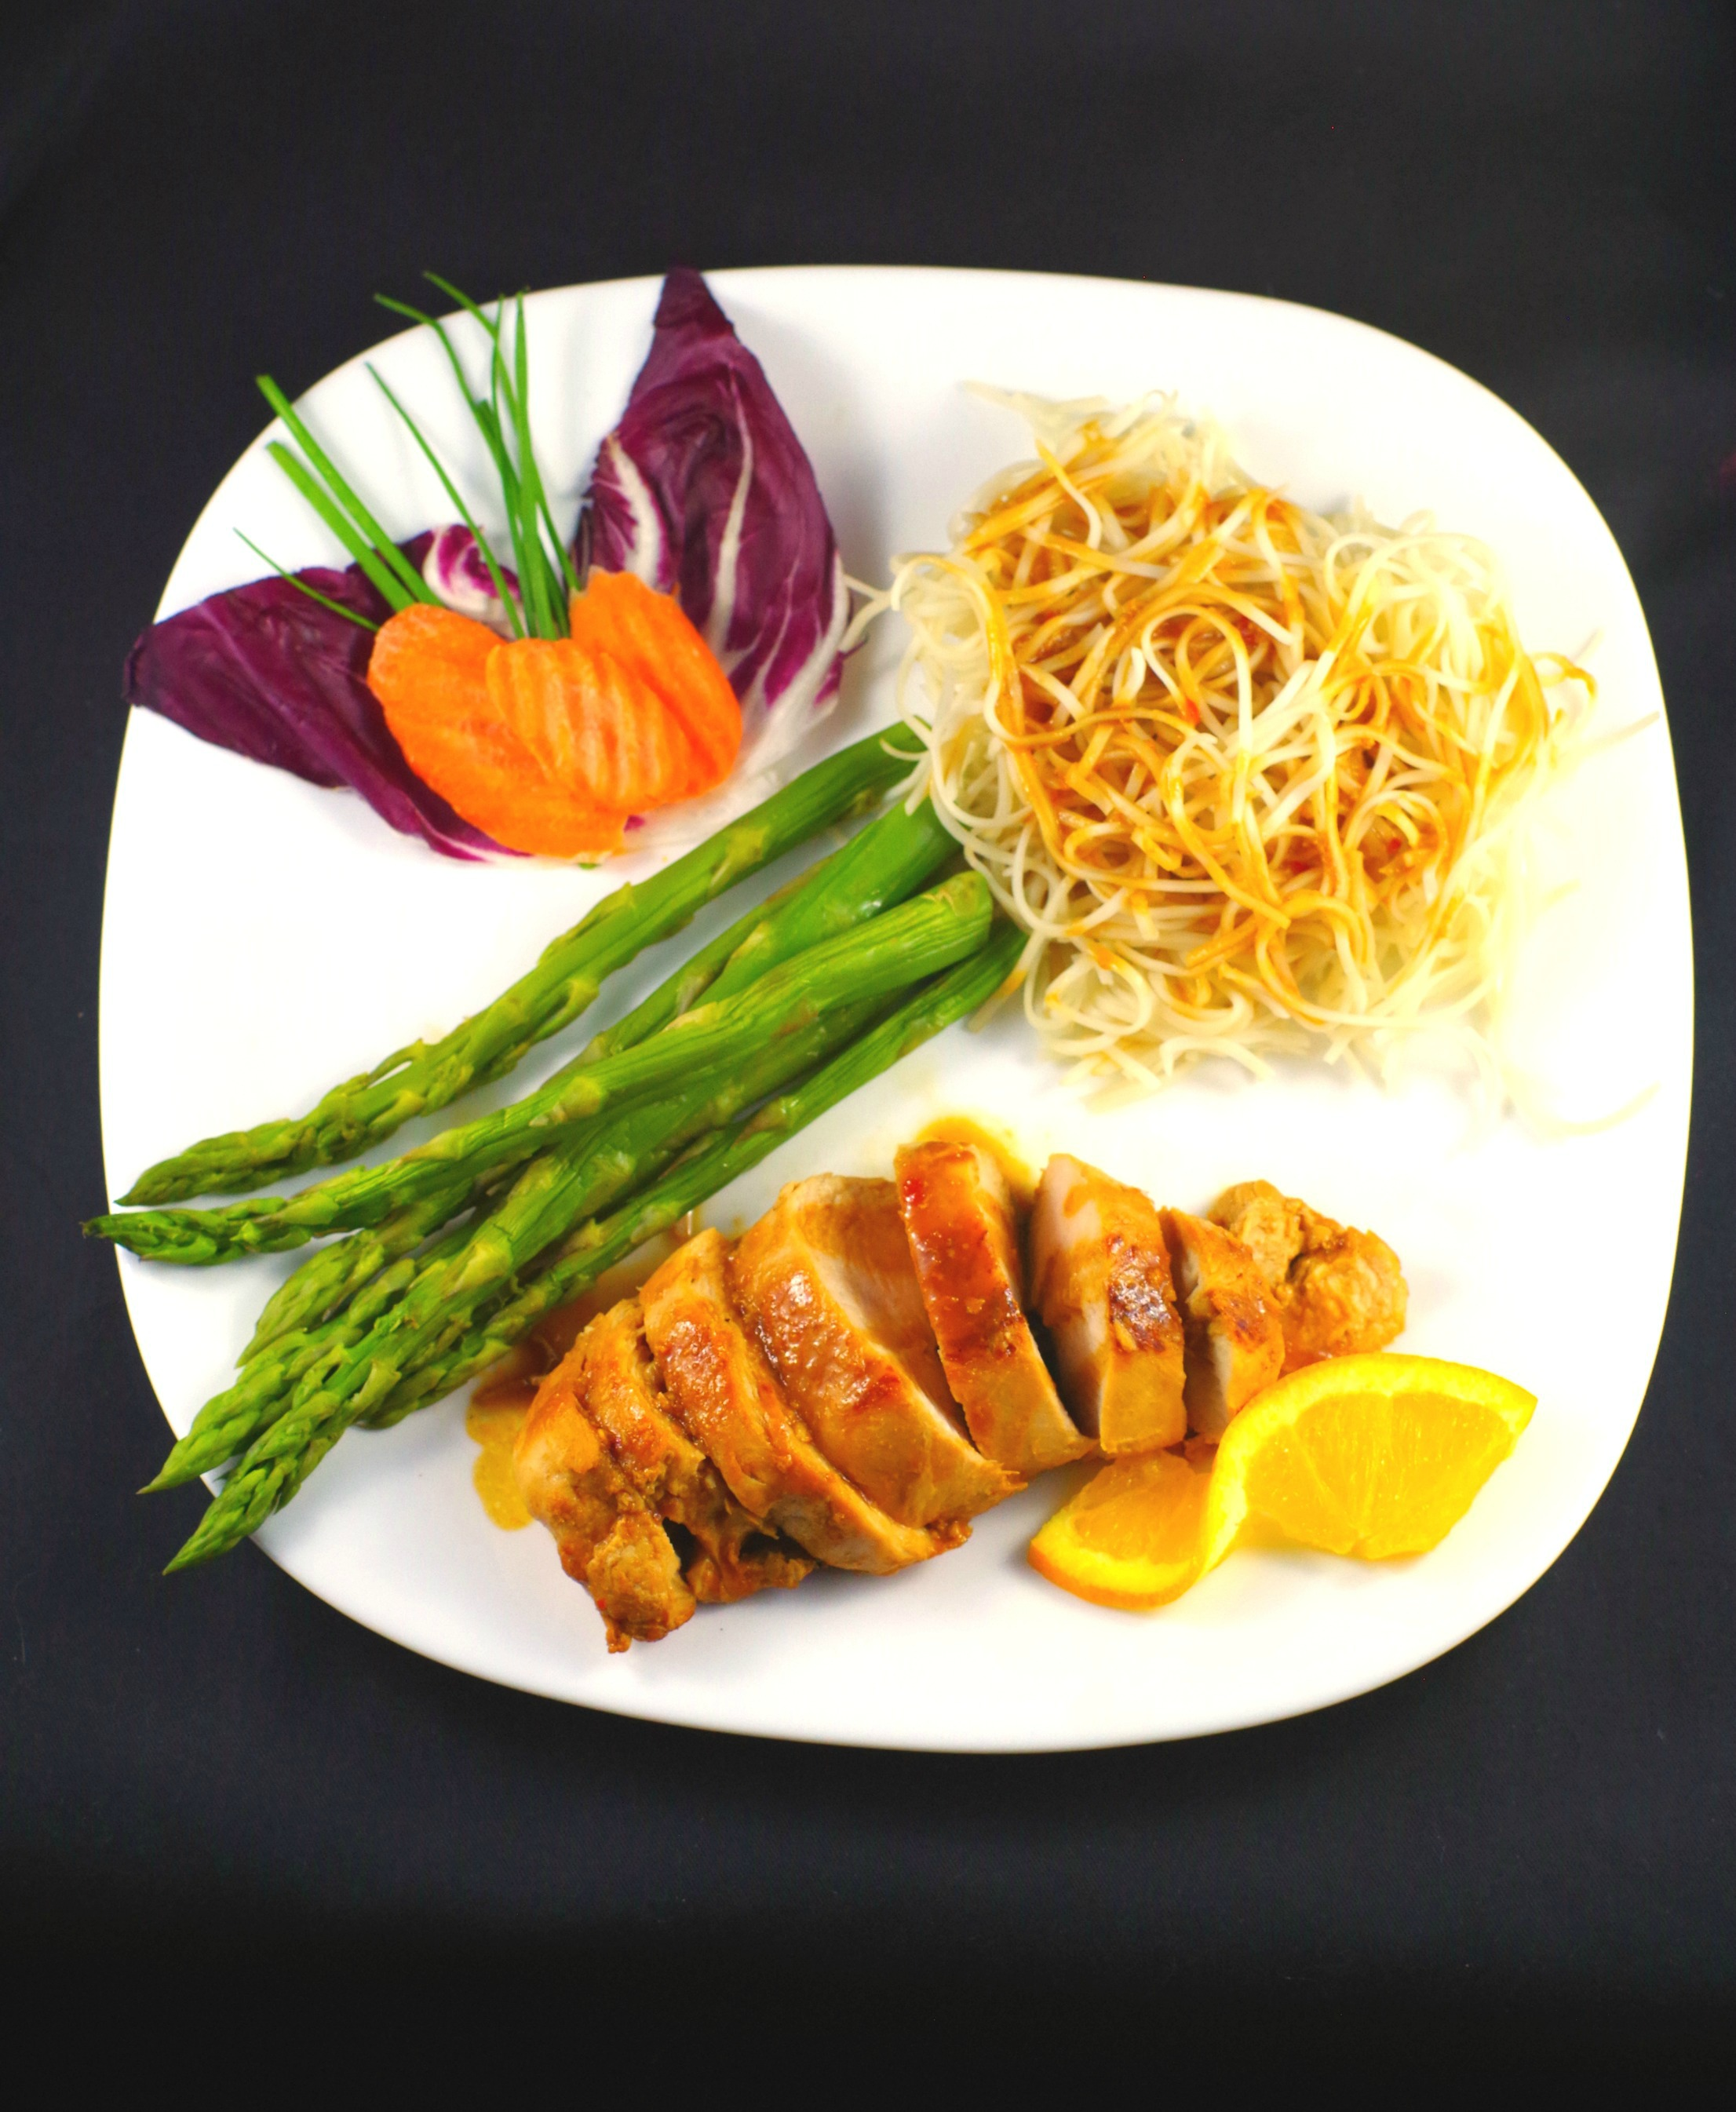 sauteed hoisin orange chicken recipe.jpg